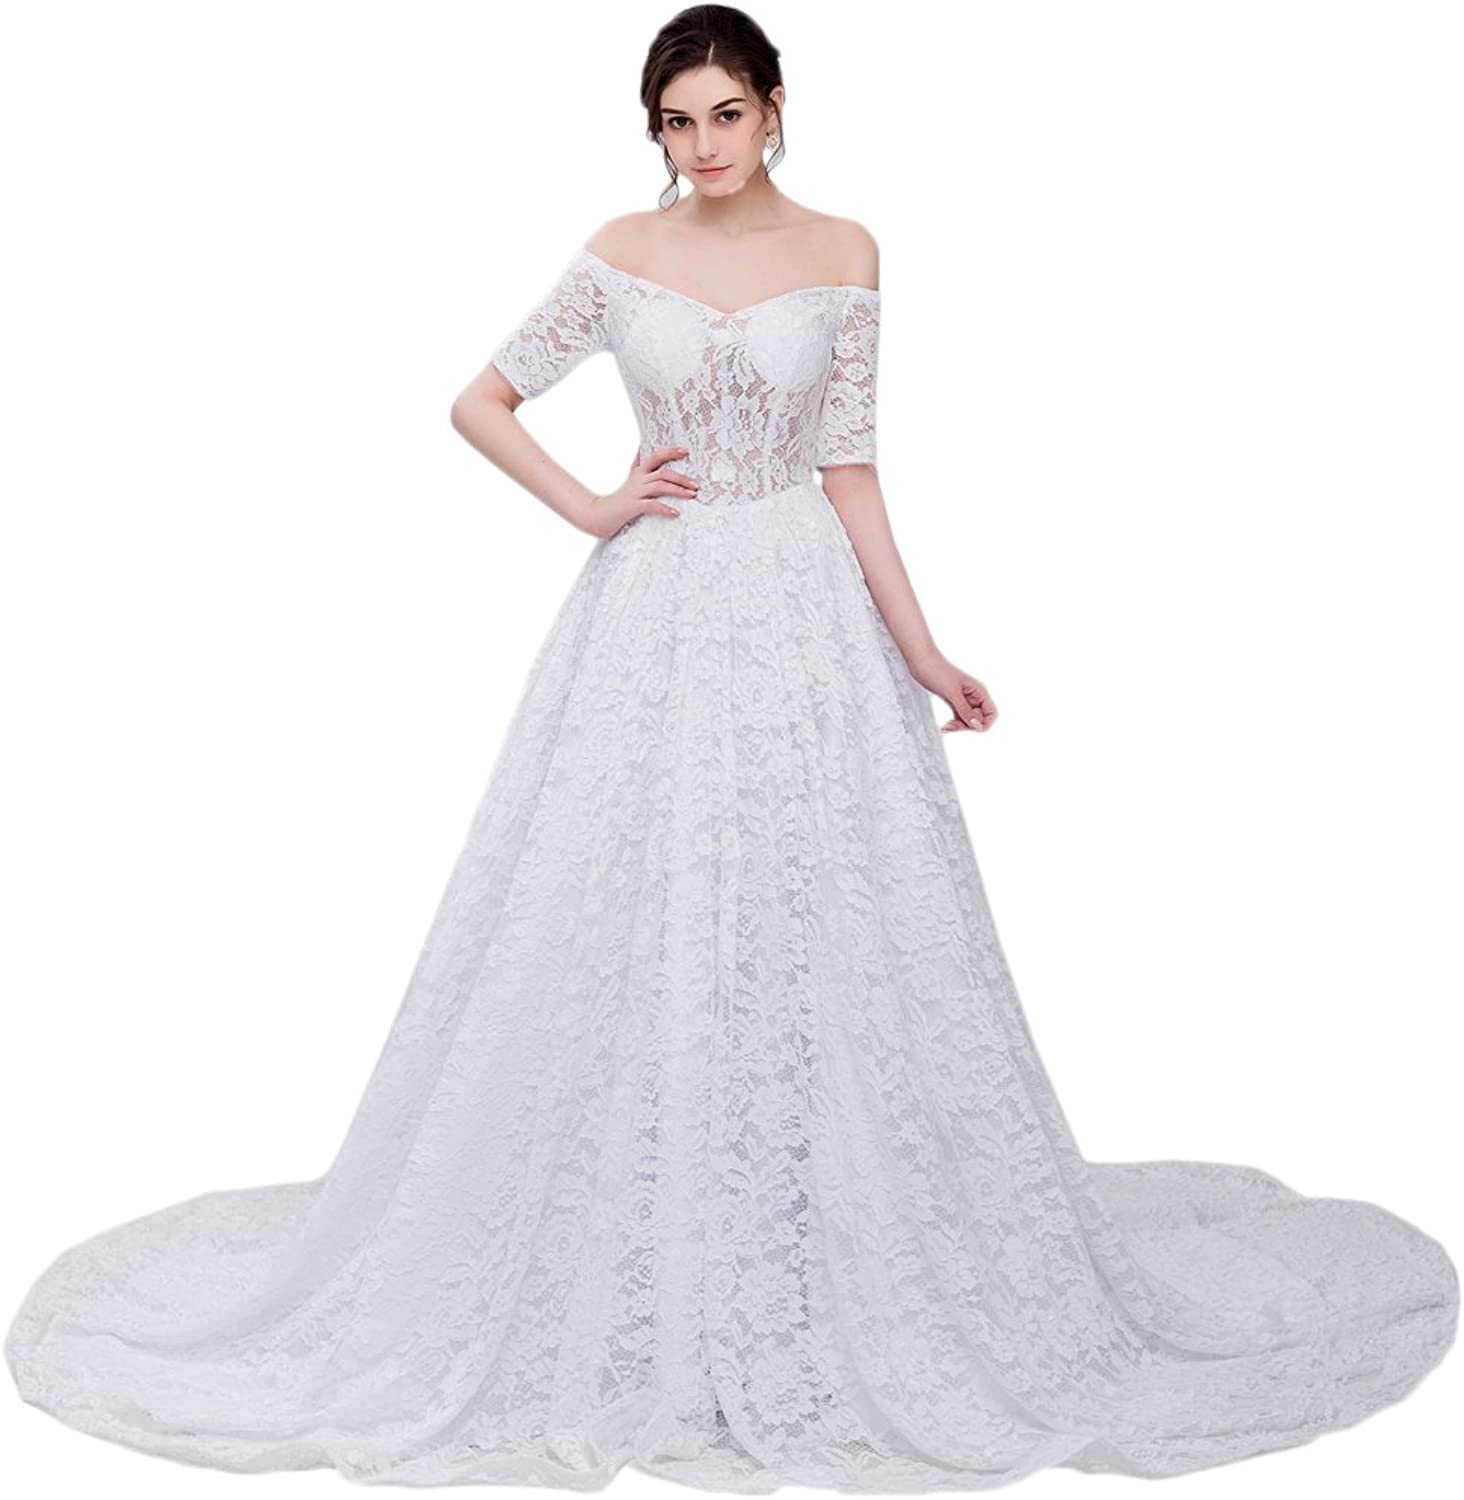 Maricopyjam Women's Carbone Lace Sheer Waist Long Pleated ALine Court Train Wedding Dress with Half Sleeves